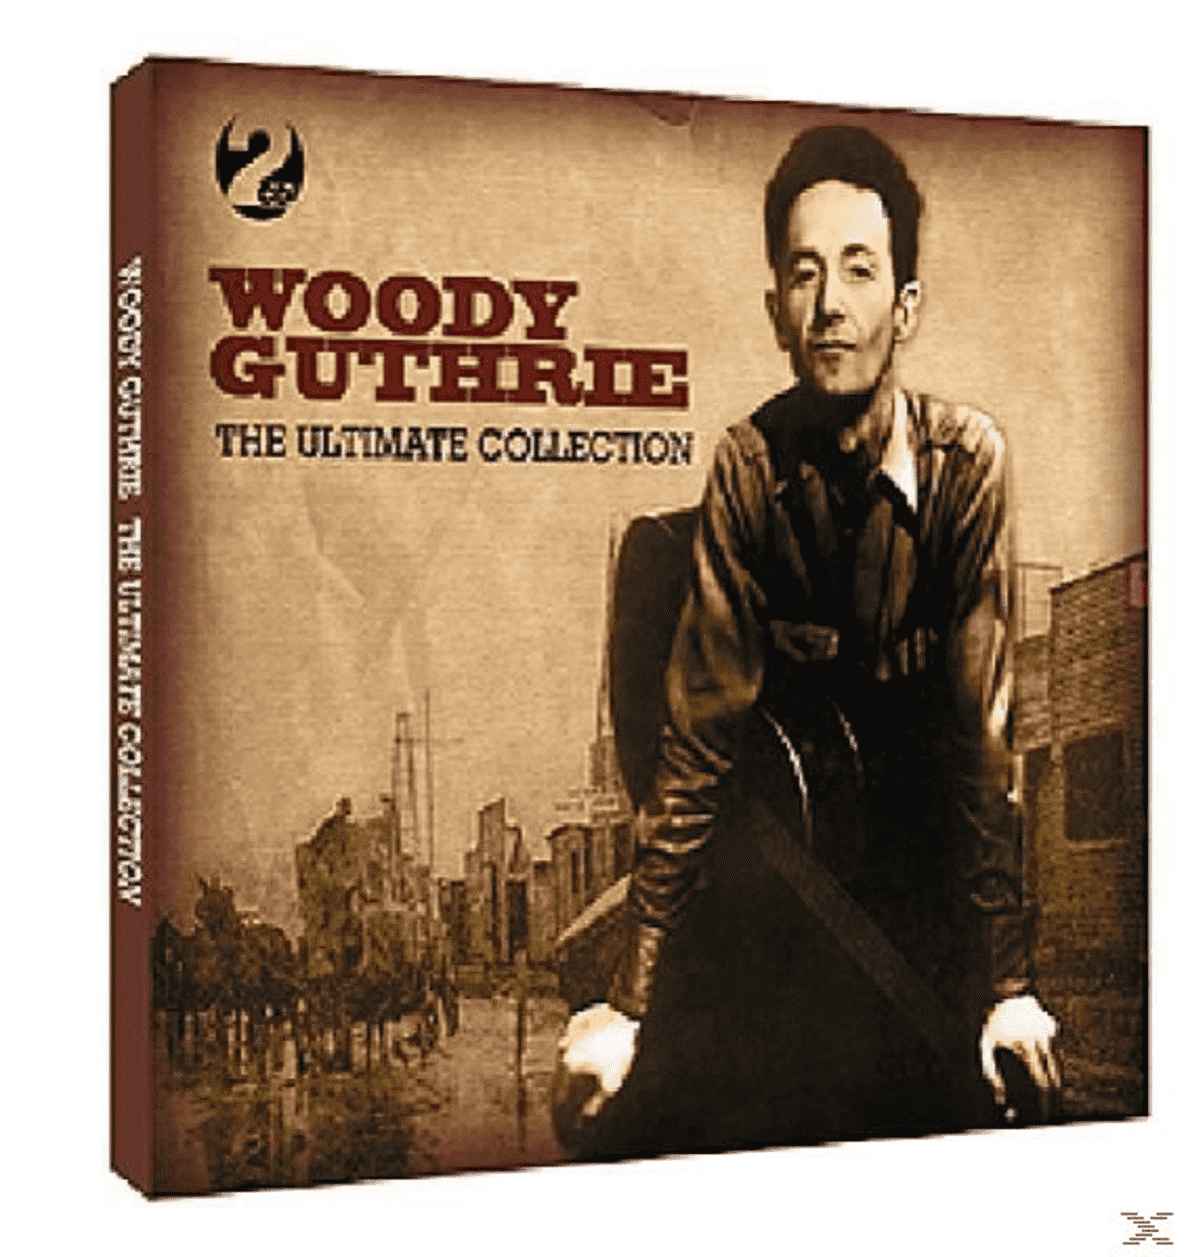 The Ultimate Collection Woody Guthrie auf CD